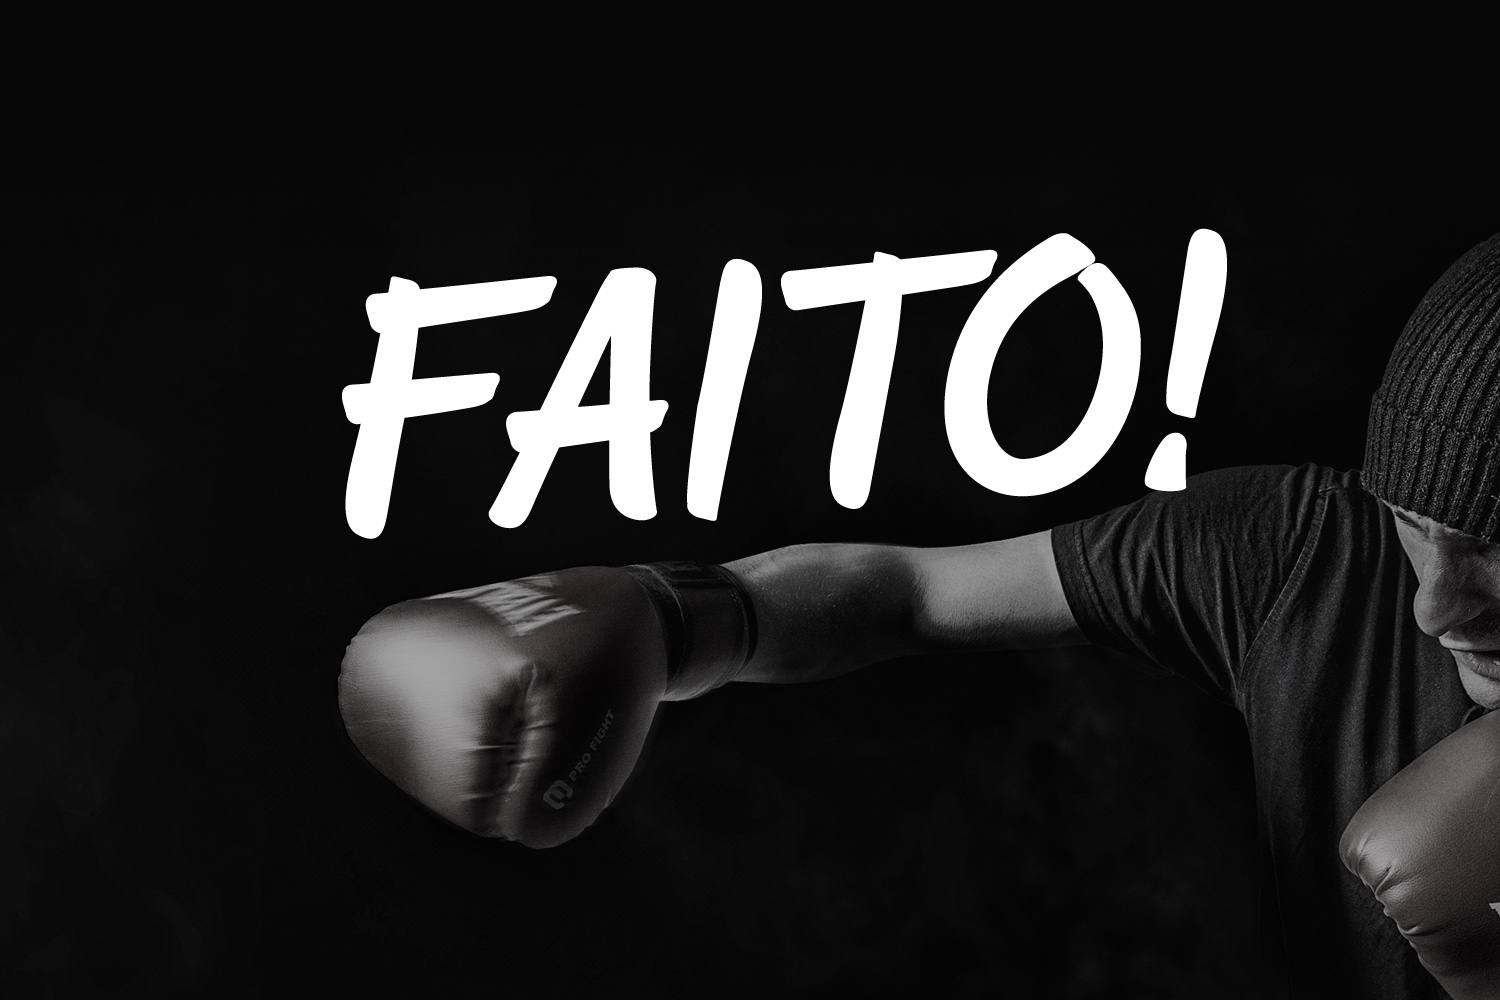 Download Free Faito Font By Nasir Udin Creative Fabrica for Cricut Explore, Silhouette and other cutting machines.